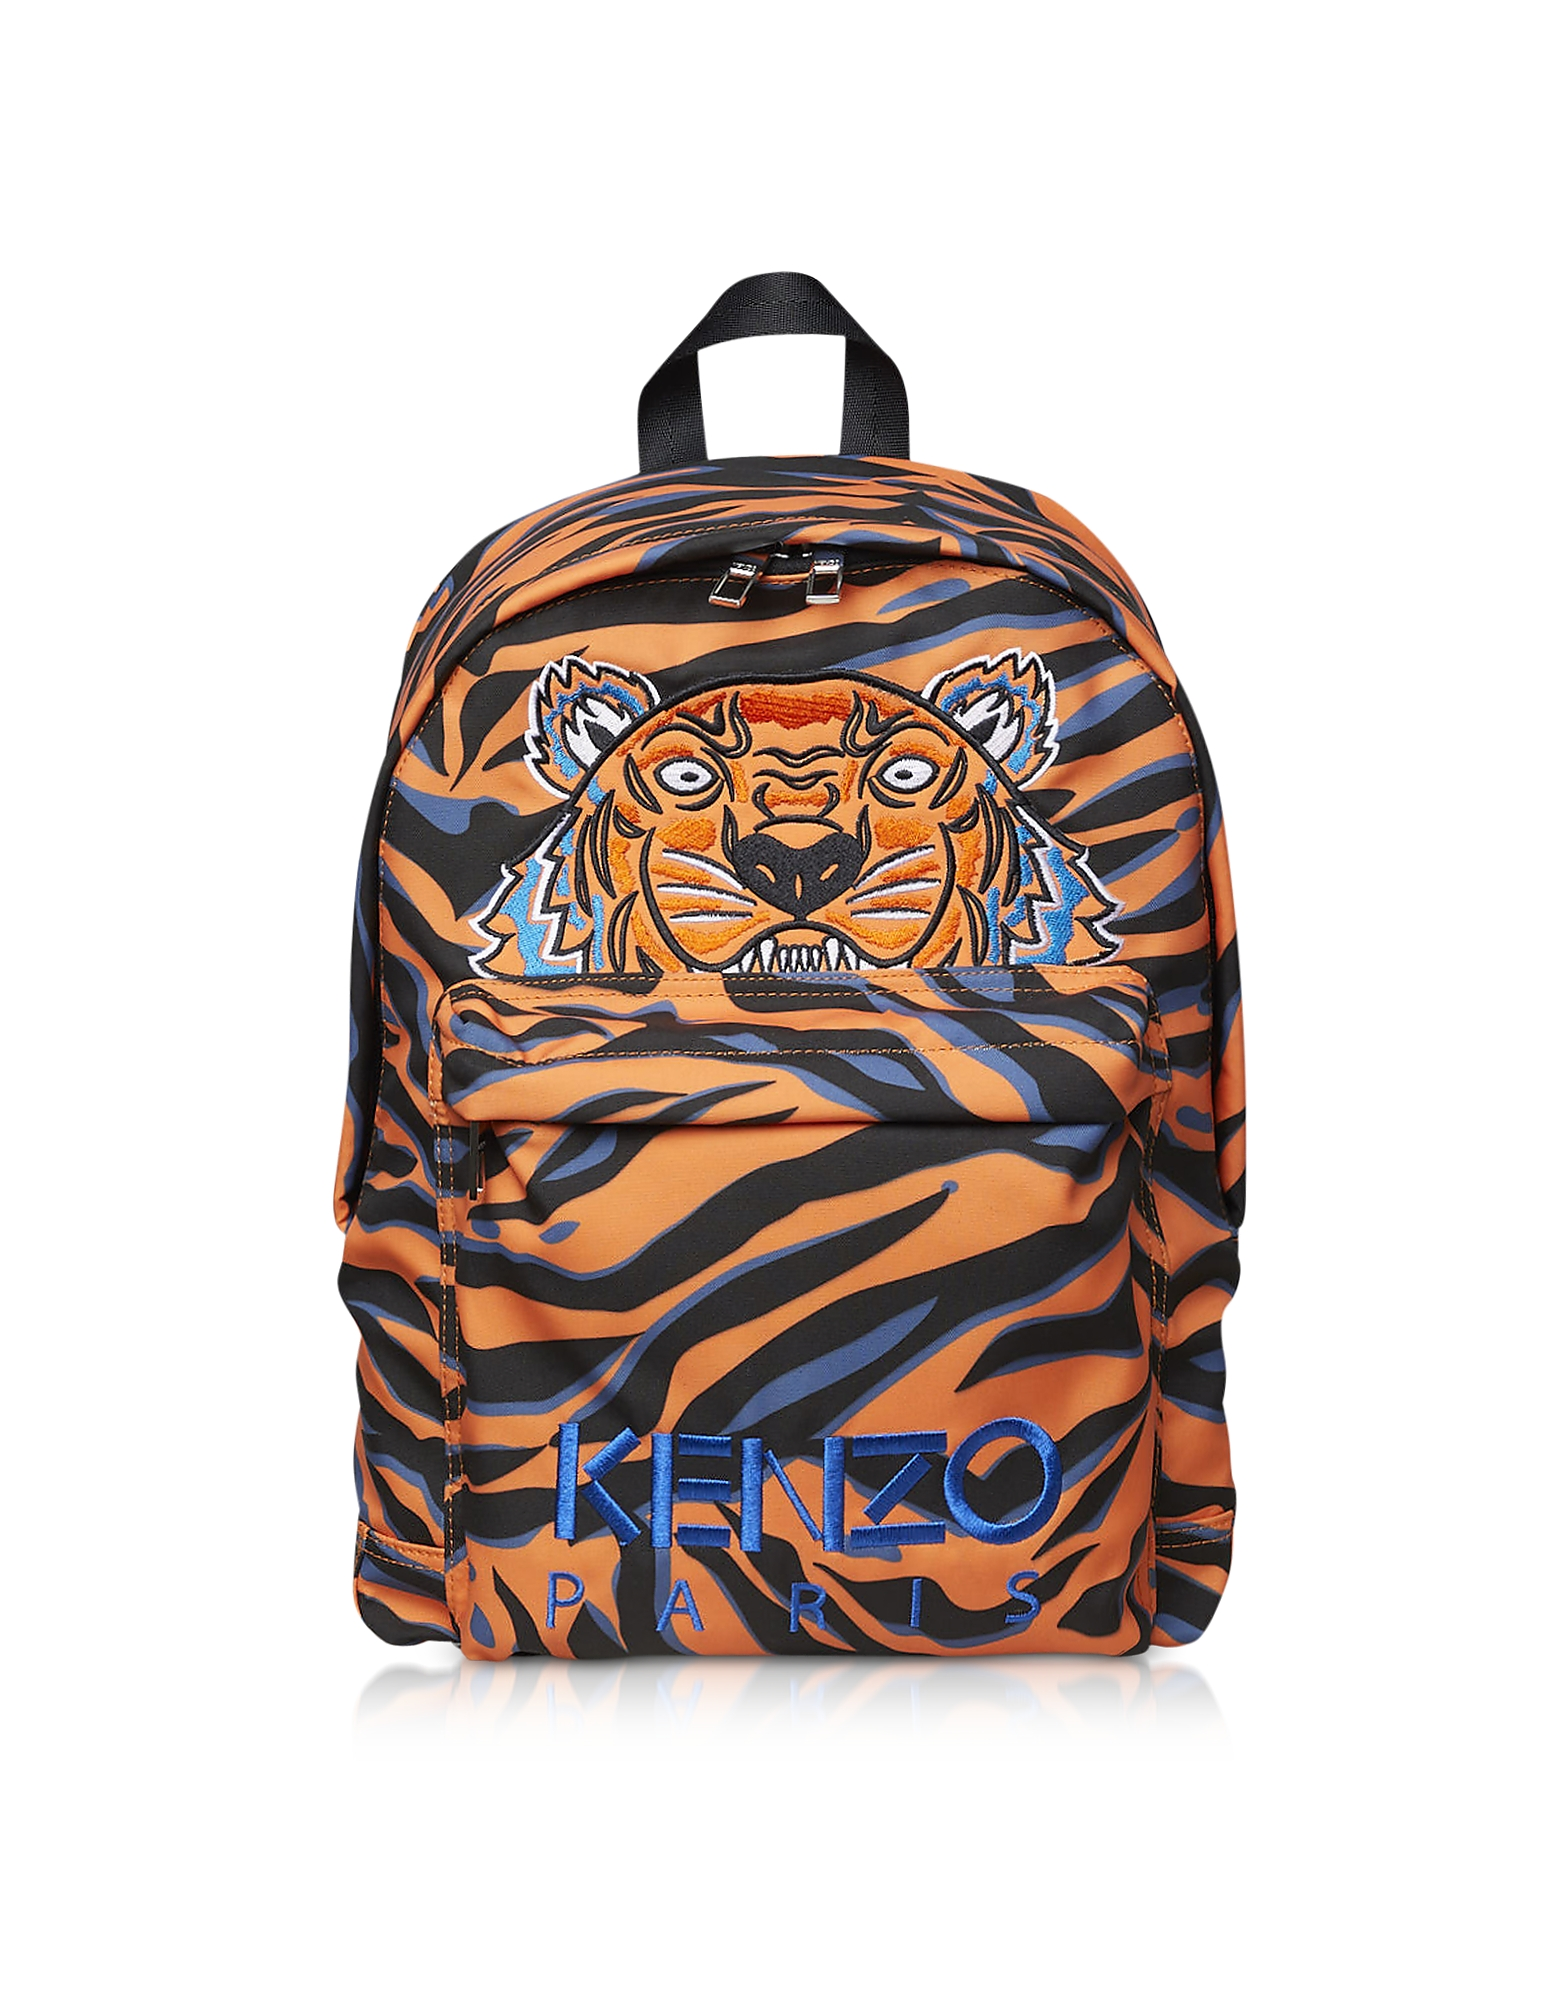 Kenzo Handbags, Orange Printed Nylon Backpack